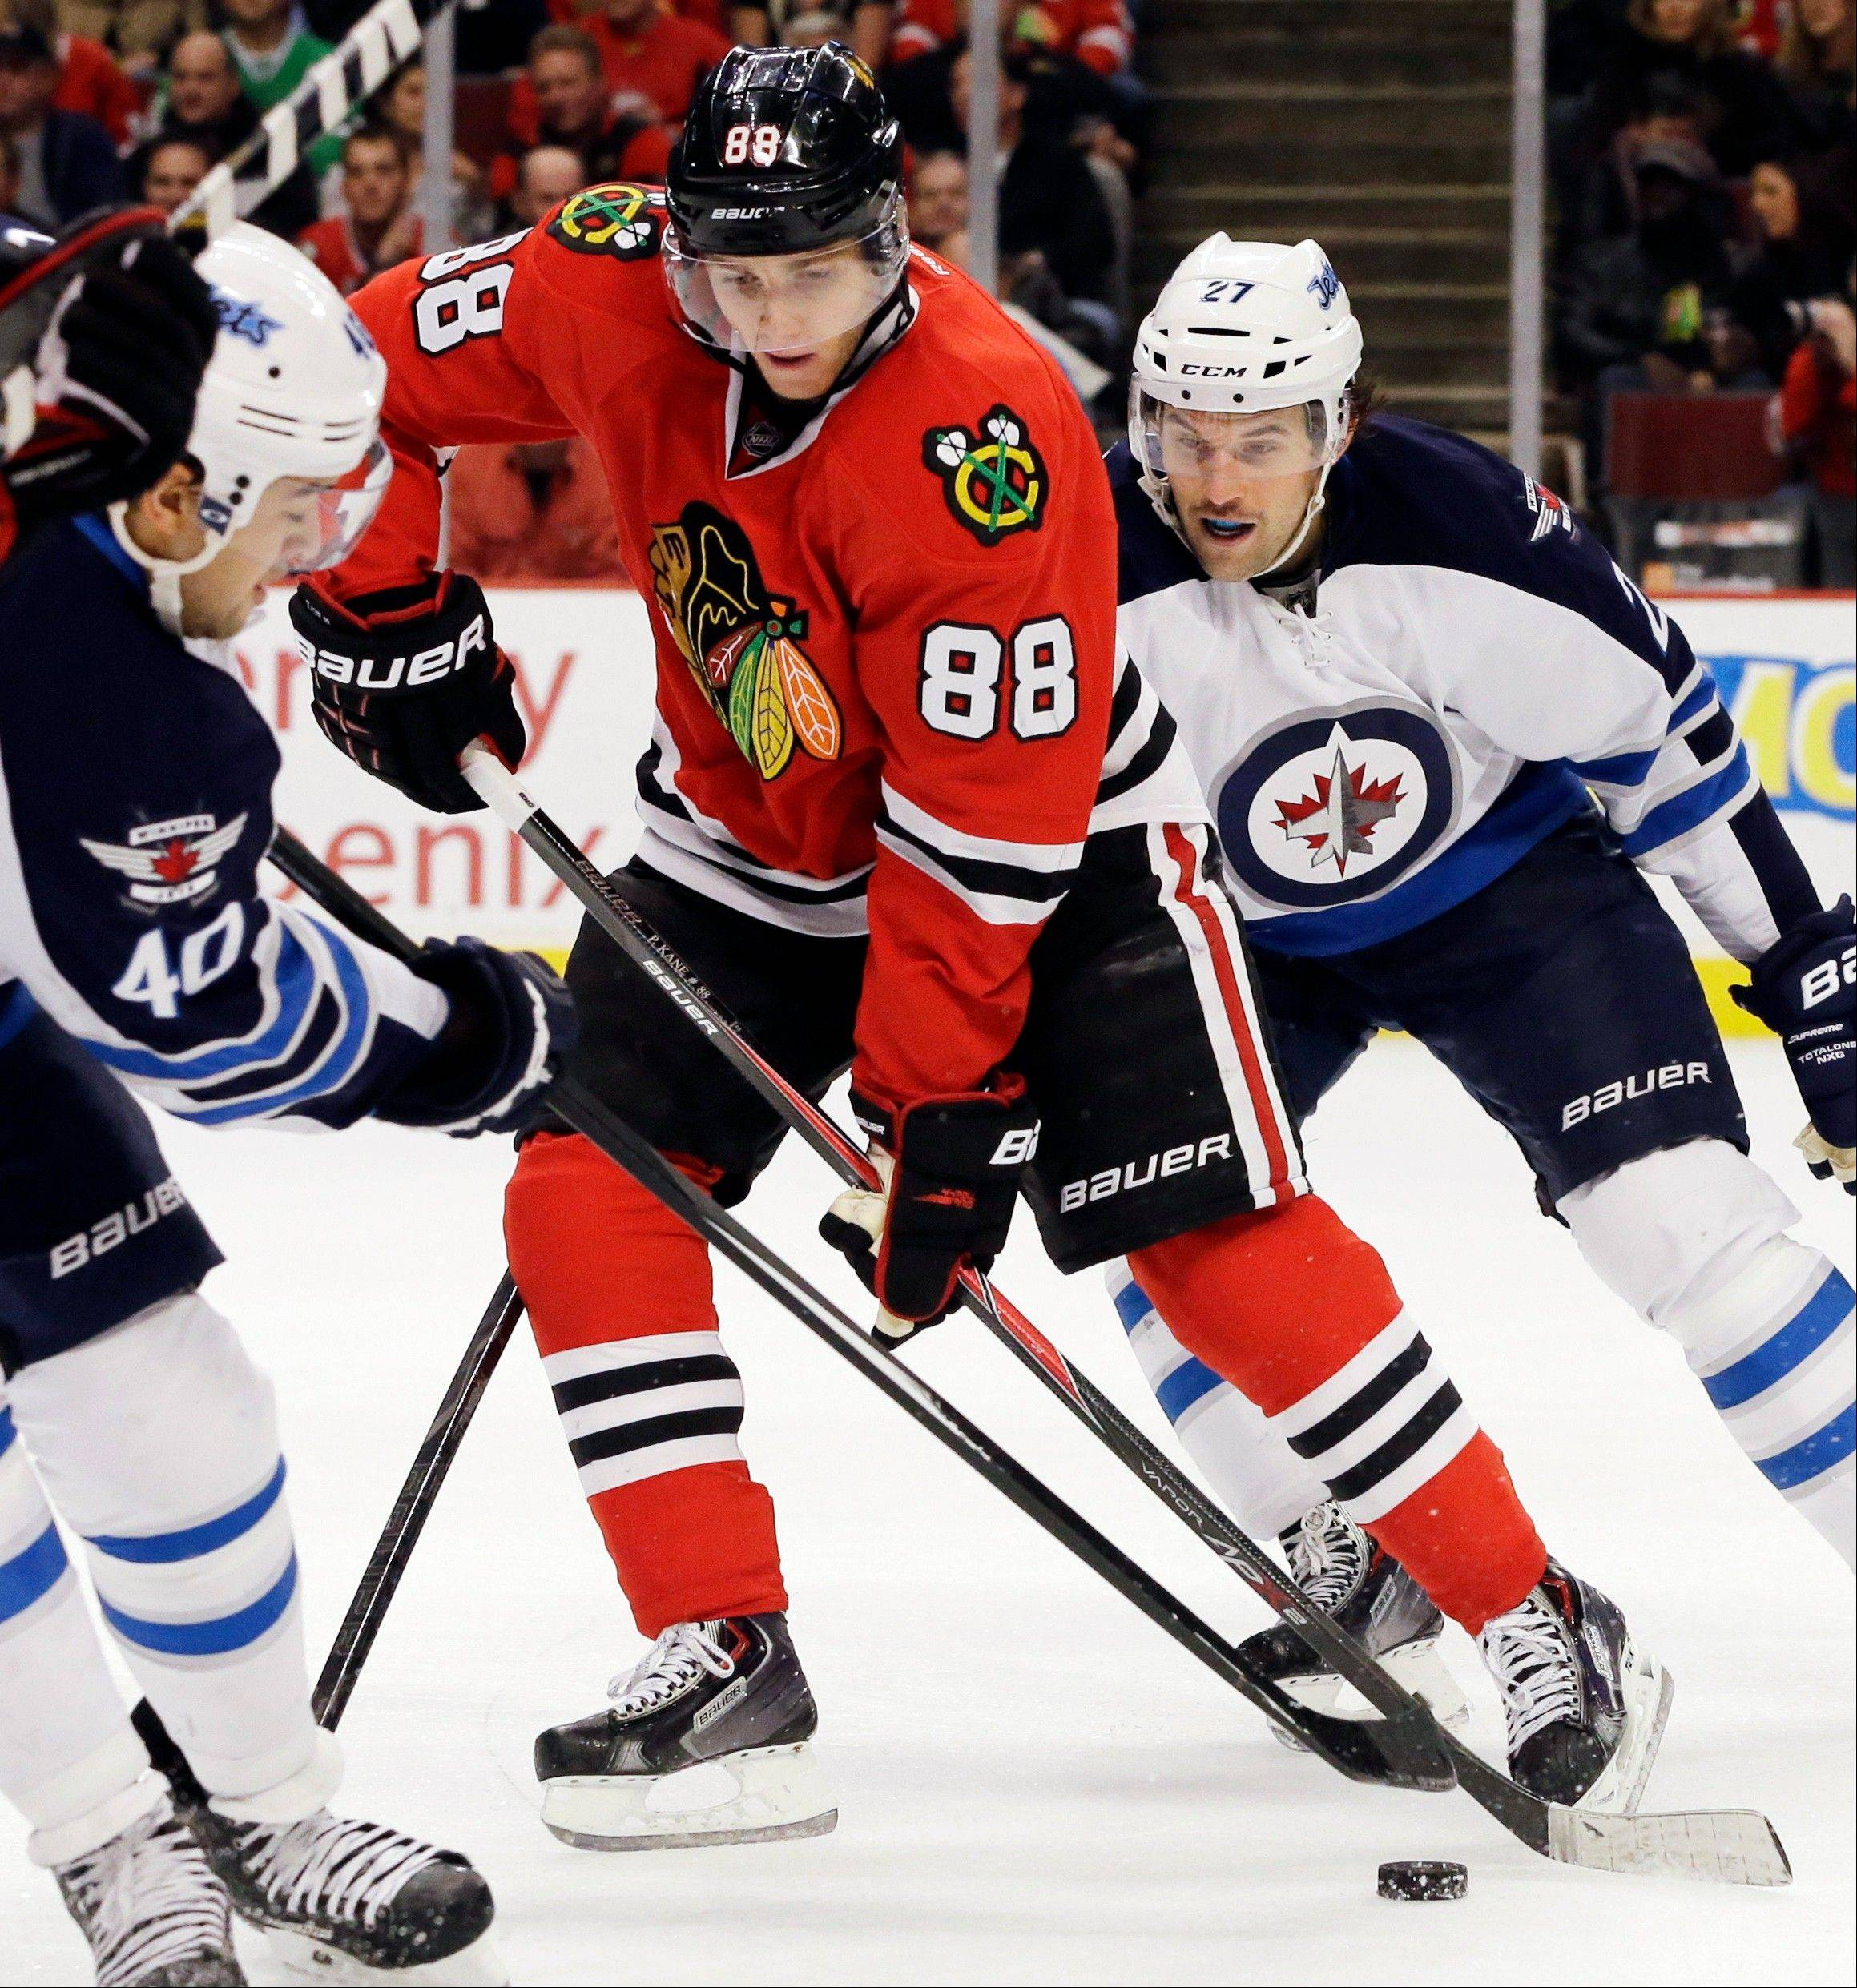 Chicago Blackhawks' Patrick Kane (88) controls the puck against Winnipeg Jets' Devin Setoguchi, left, and Eric Tangradi during the second period of an NHL hockey game in Chicago, Wednesday, Nov. 6, 2013.